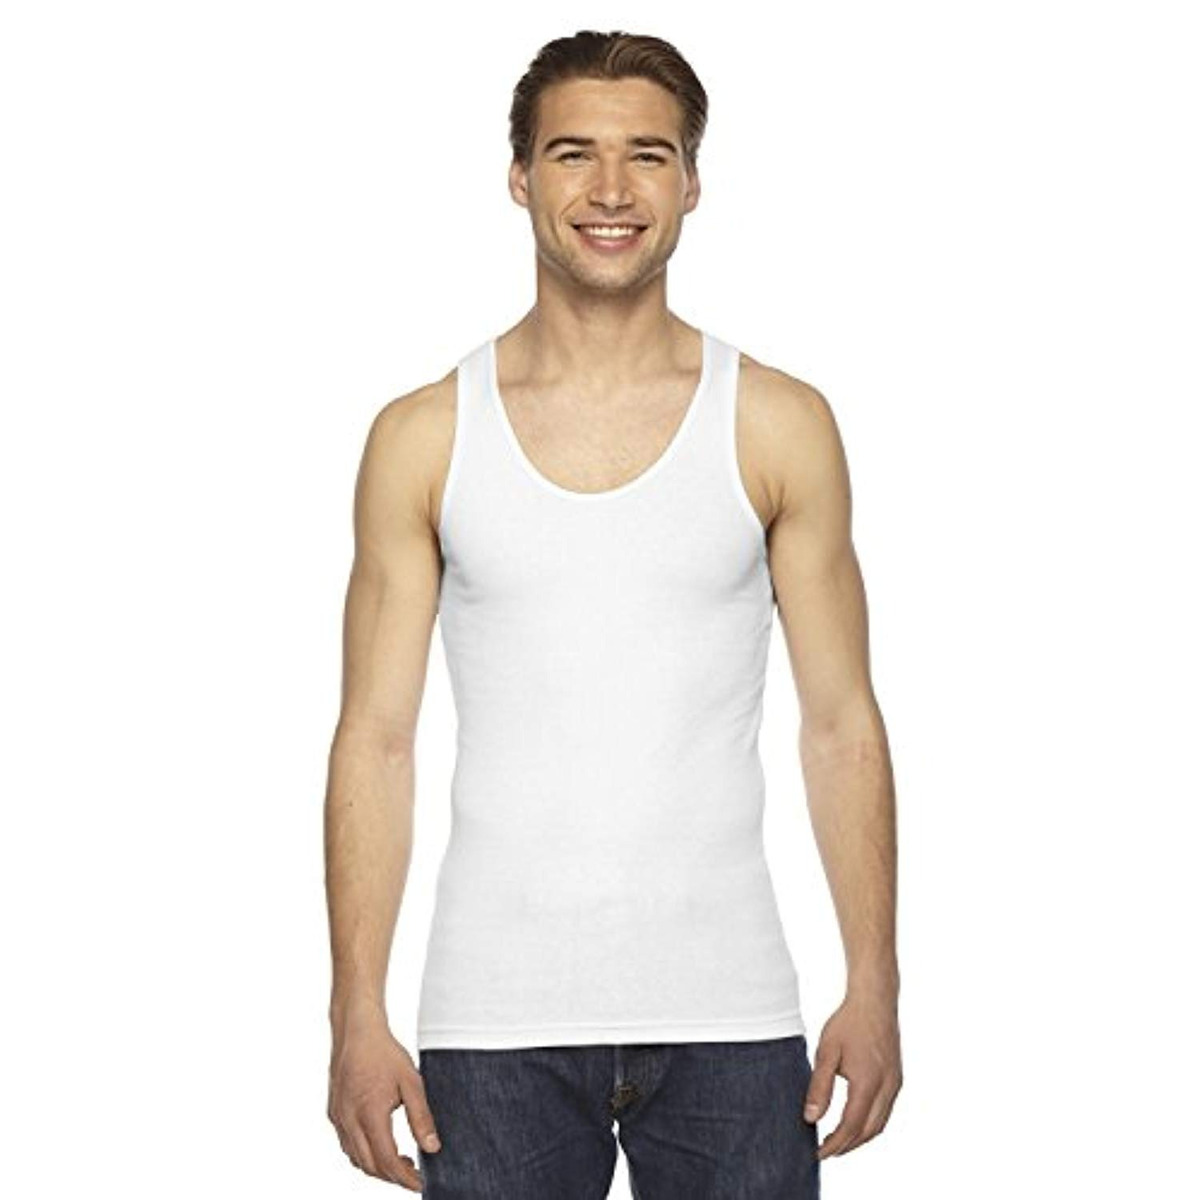 online here great quality uk cheap sale Camiseta Hombre Ropa Americana Tank Top Size S Blanco